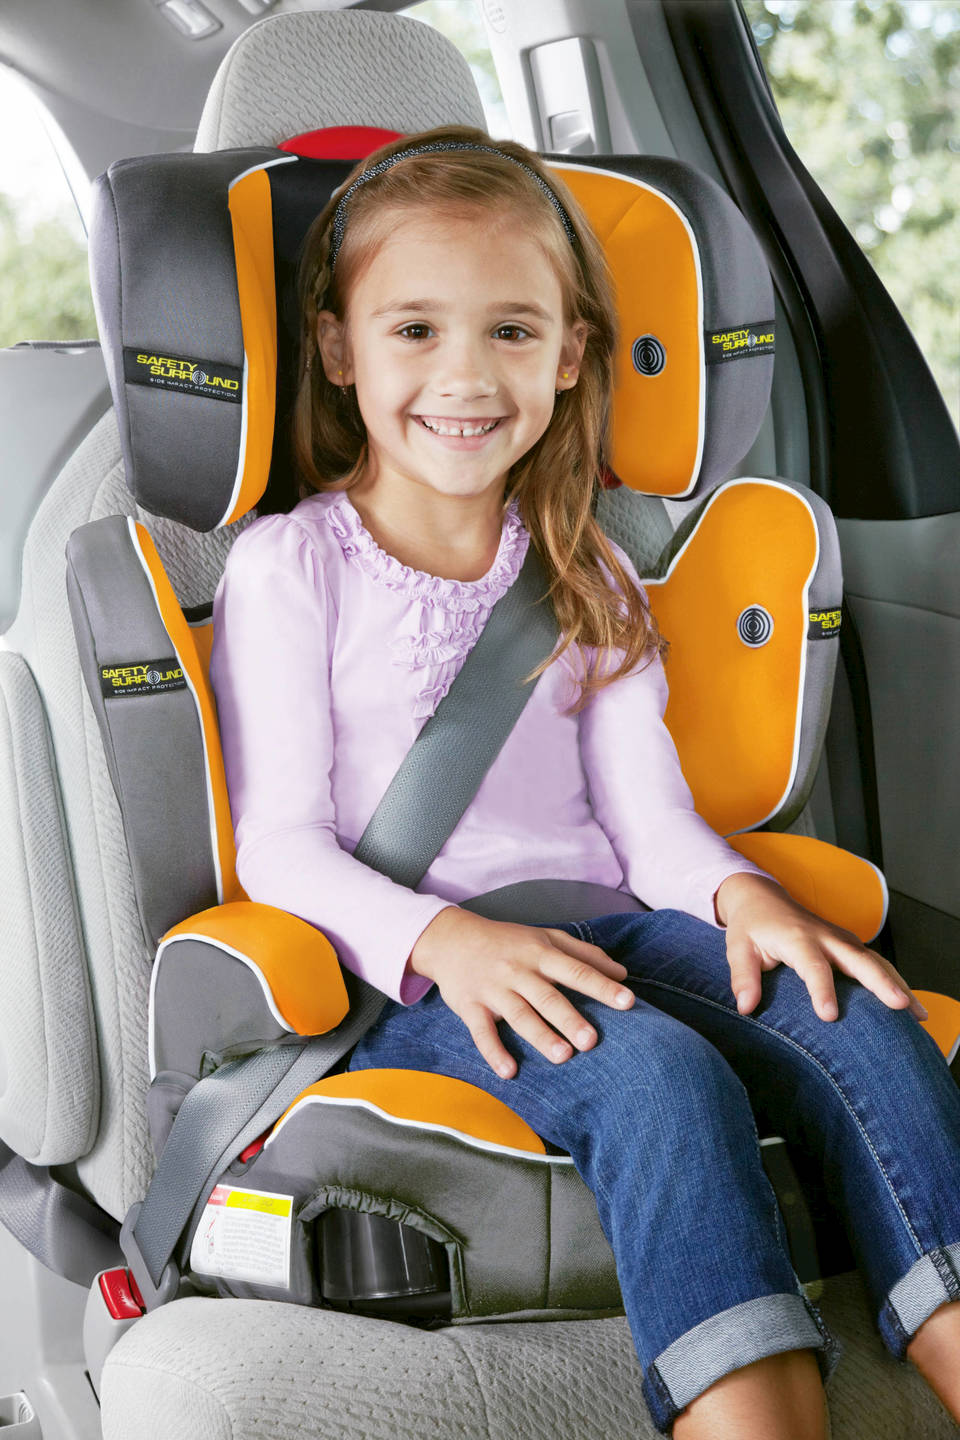 This Graco Car Seat Features Safety Surround Side Impact Protection That Provides Head And Body For Your Growing Child From 30 100 Lbs